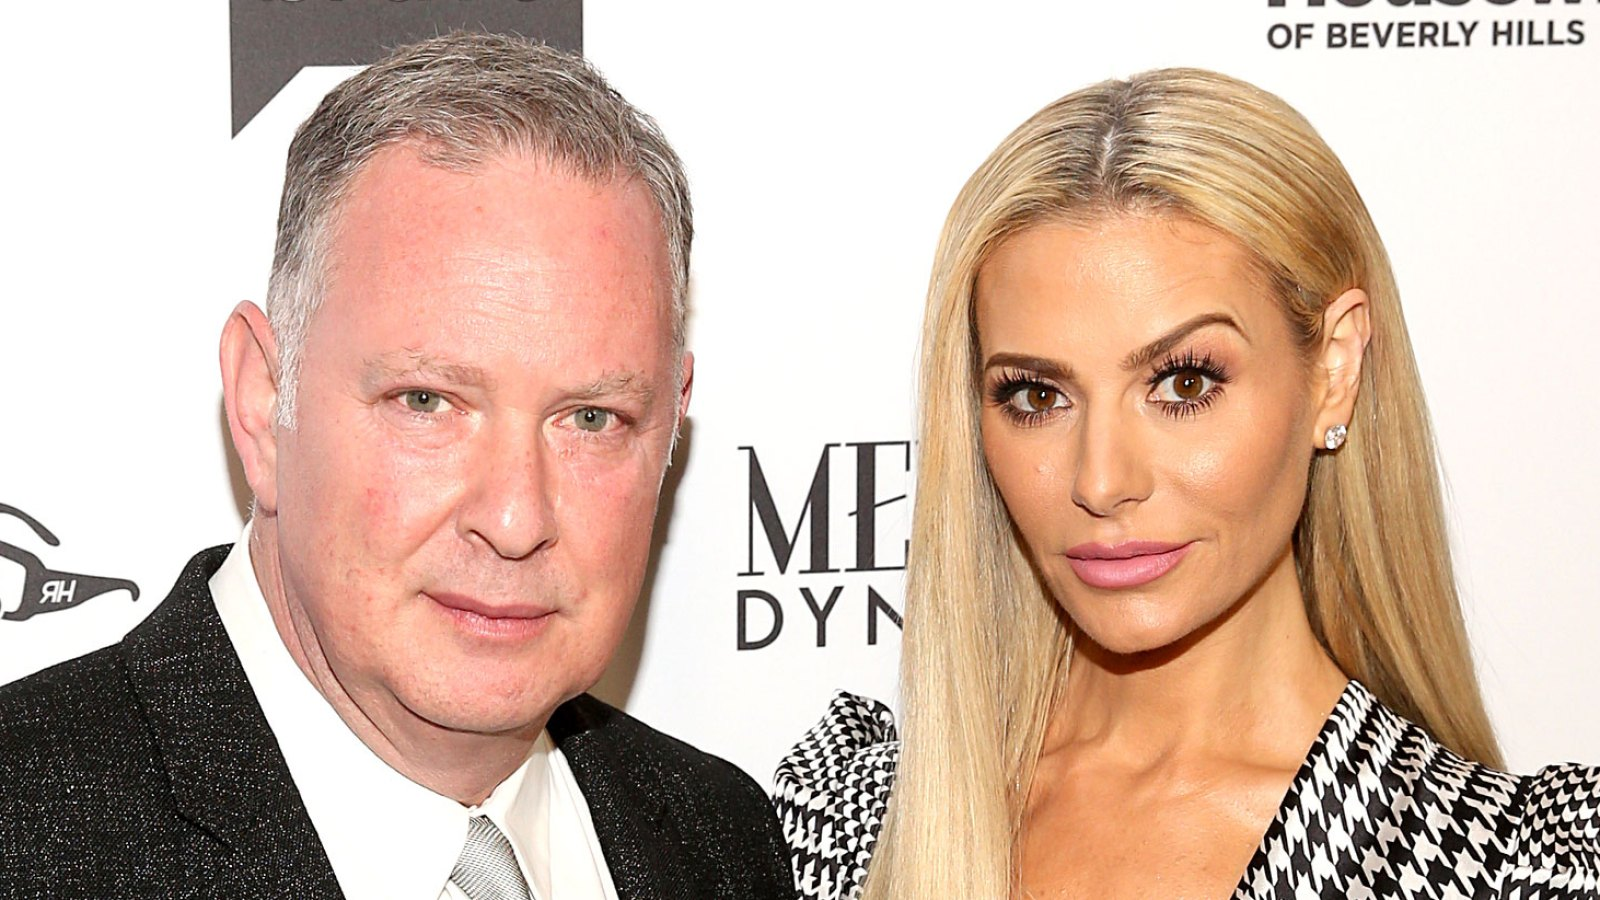 c38a33e733 'Real Housewives of Beverly Hills' Star Dorit Kemsley's Husband PK Kemsley  Ordered to Reveal Finances Amid Lawsuit